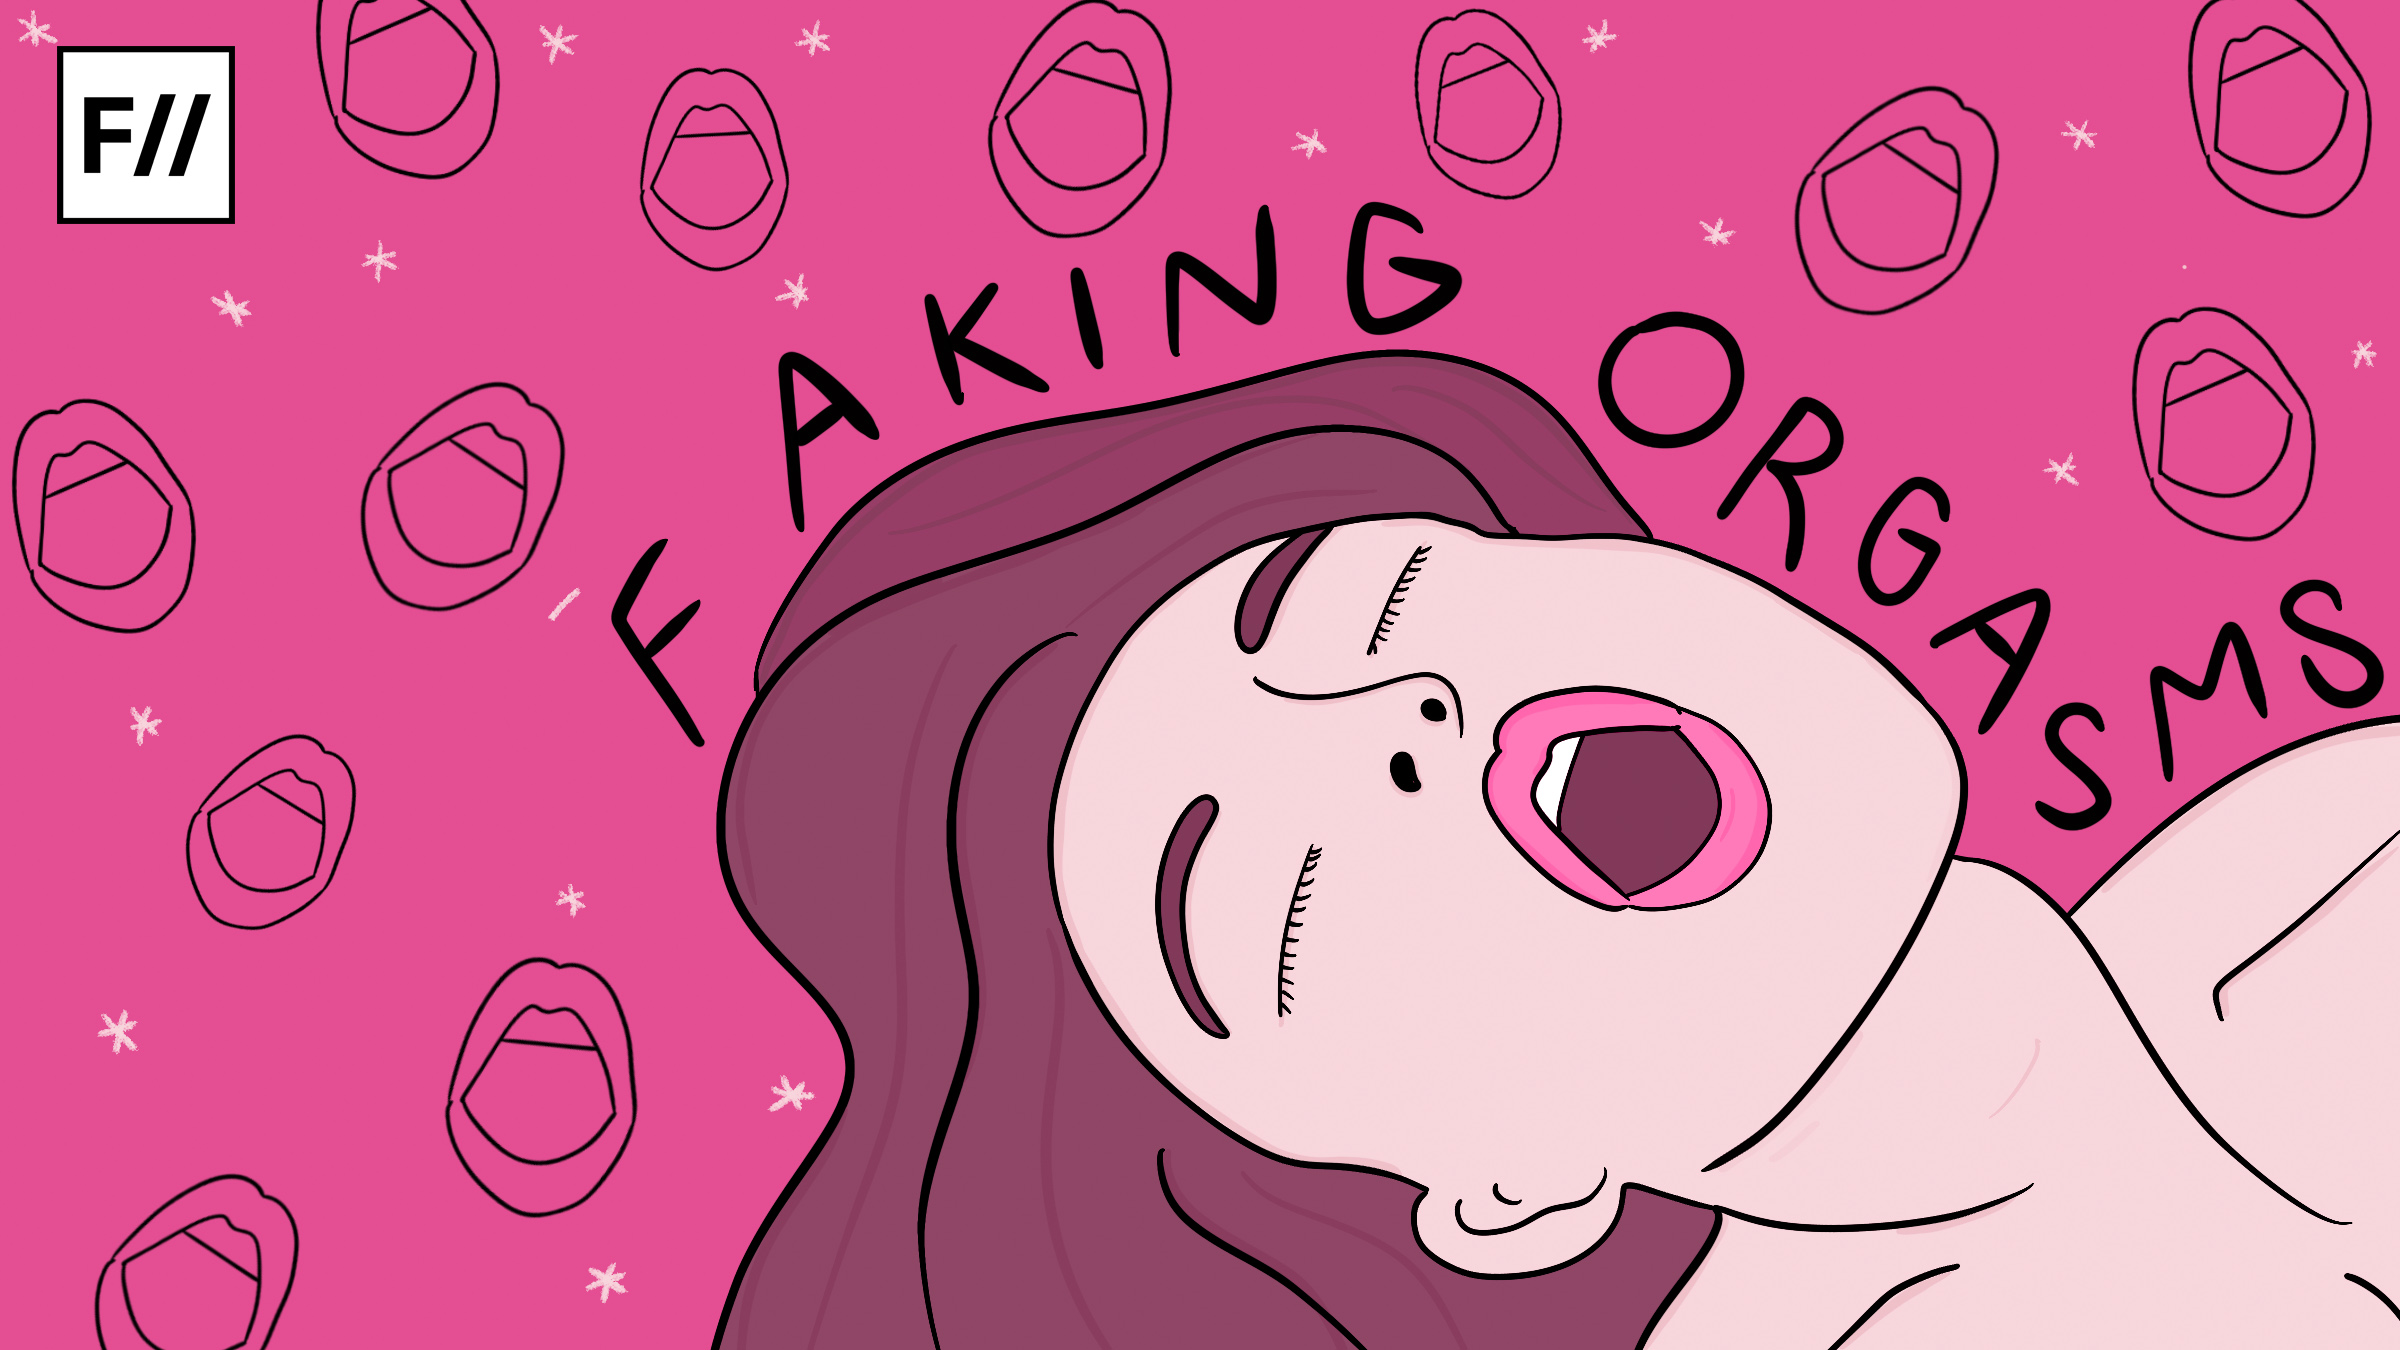 Can The Art Of Faking Orgasms Be Theorised?